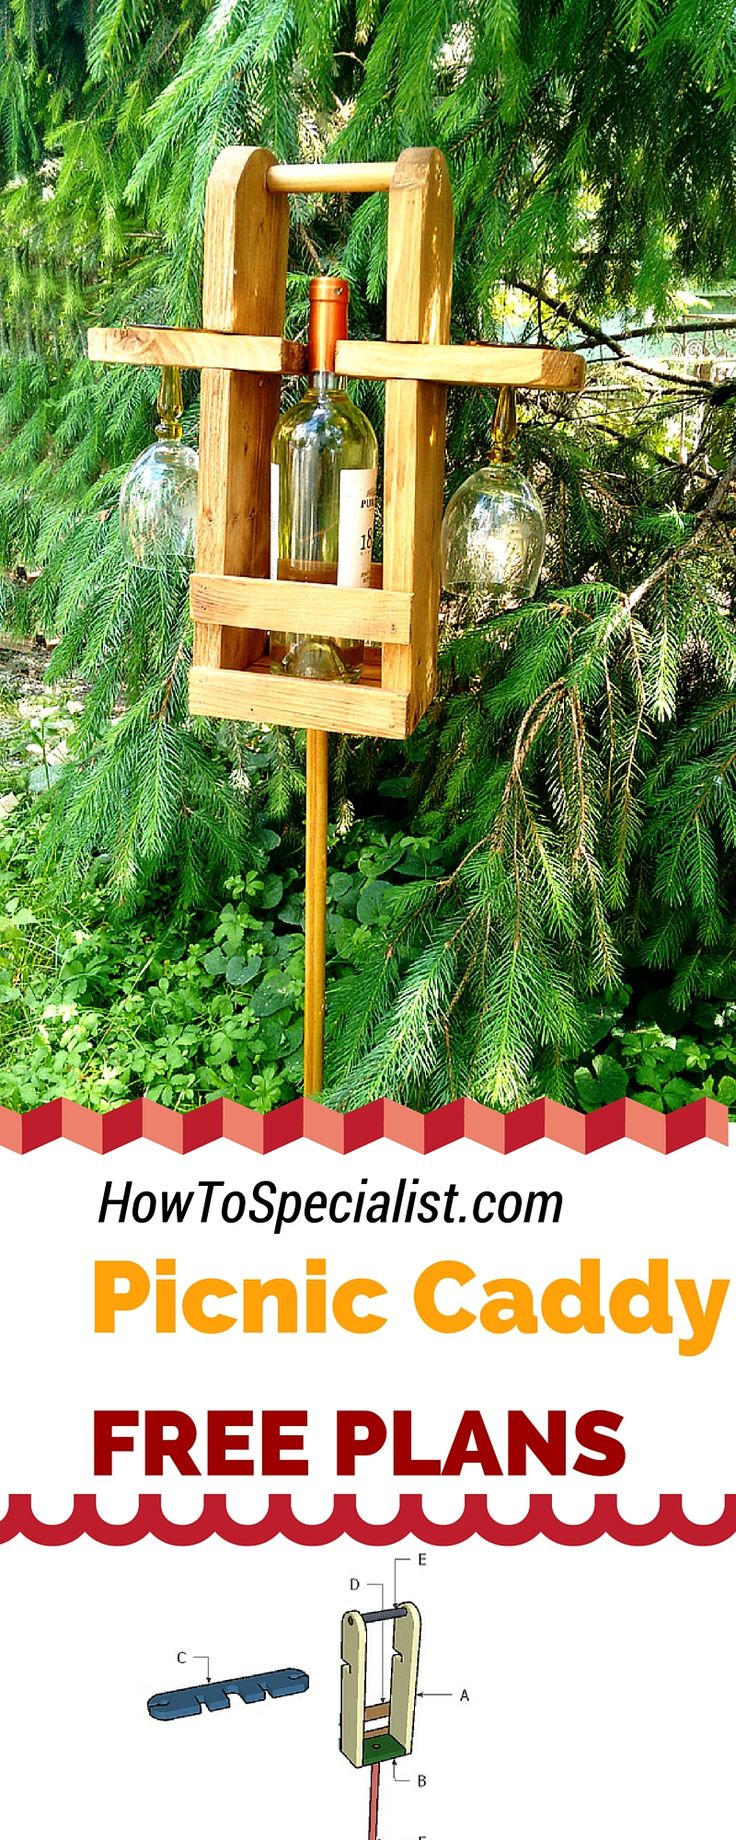 Diy bar plans howtospecialist how to build step by step diy plans - Easy To Follow Plans For Your To Learn How To Build A Picnic Wine Caddy